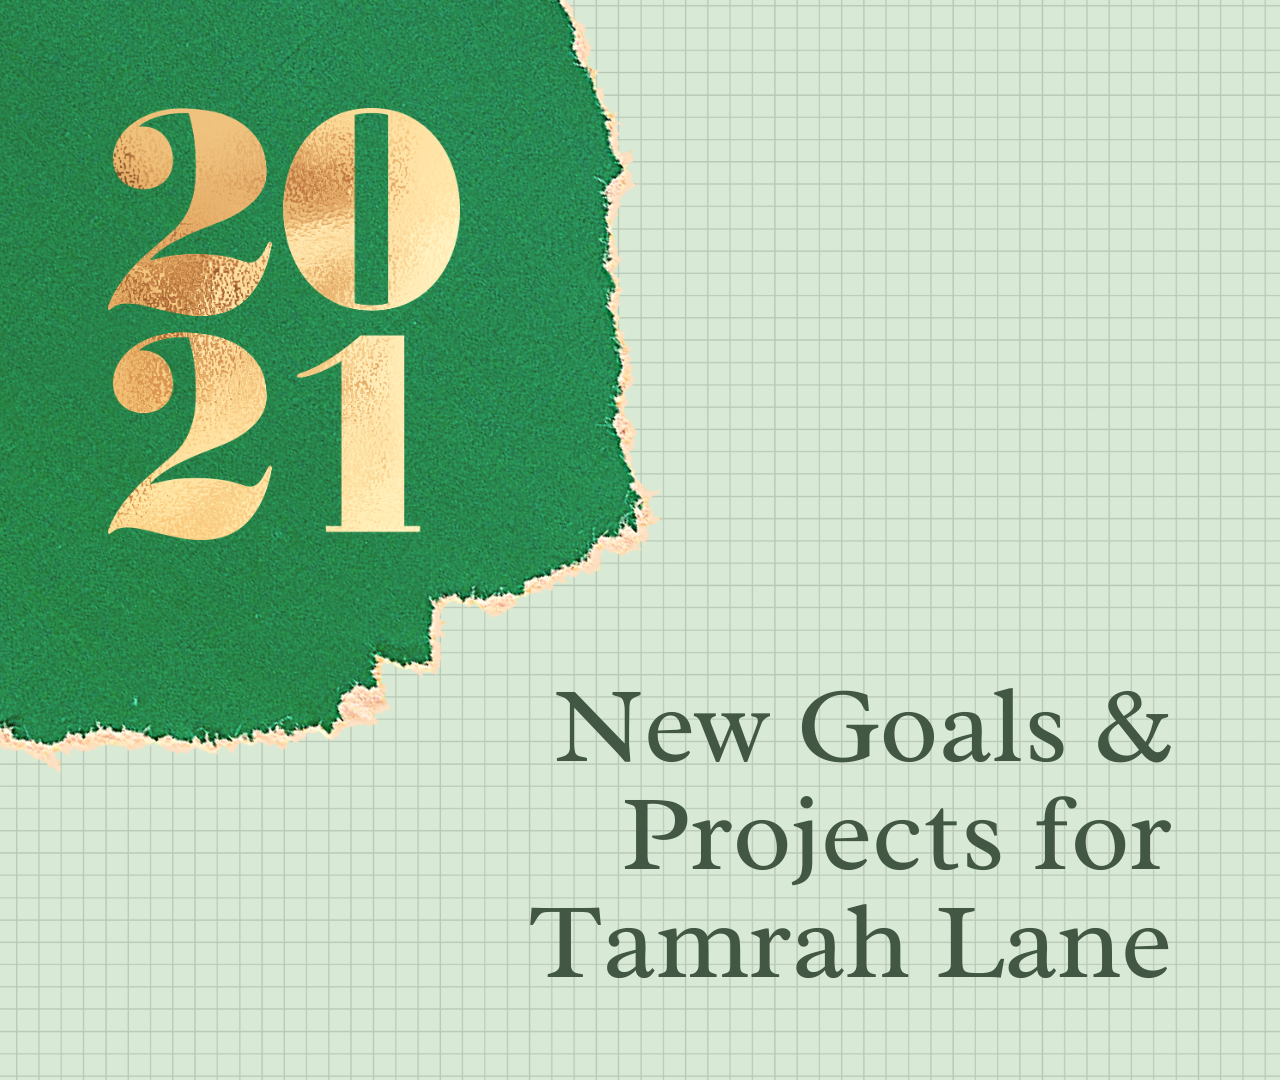 2021 Goals and New Projects for Tamrah Lane